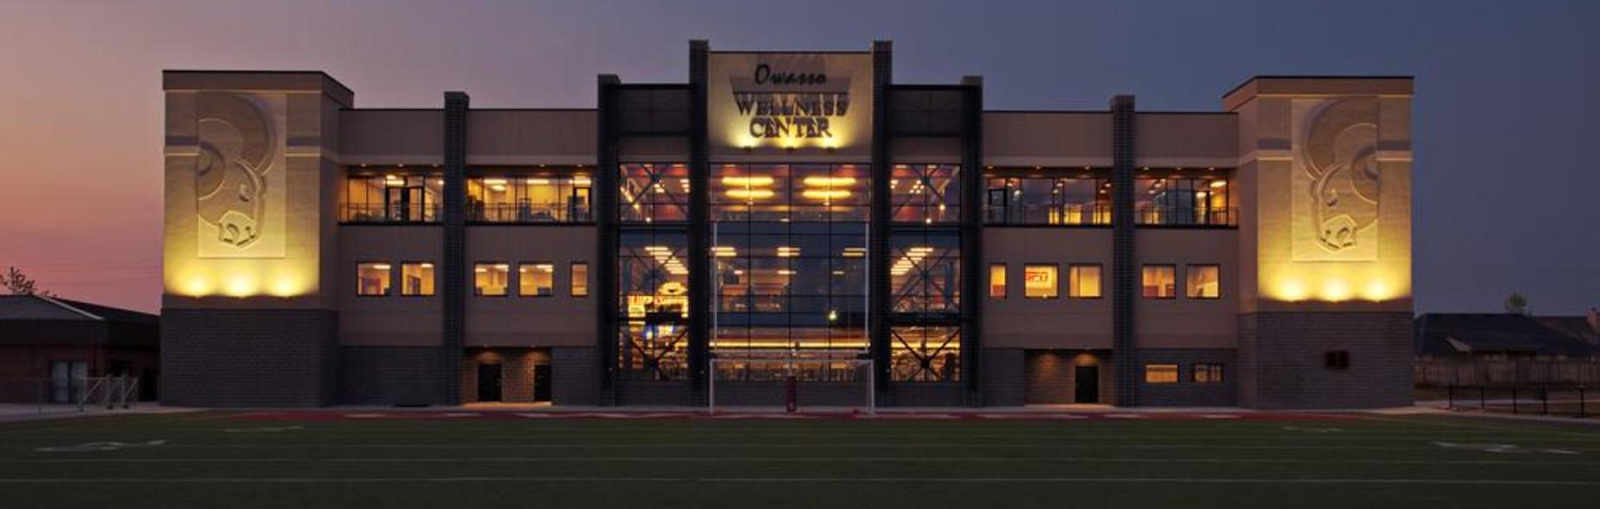 Owasso High School, Owasso